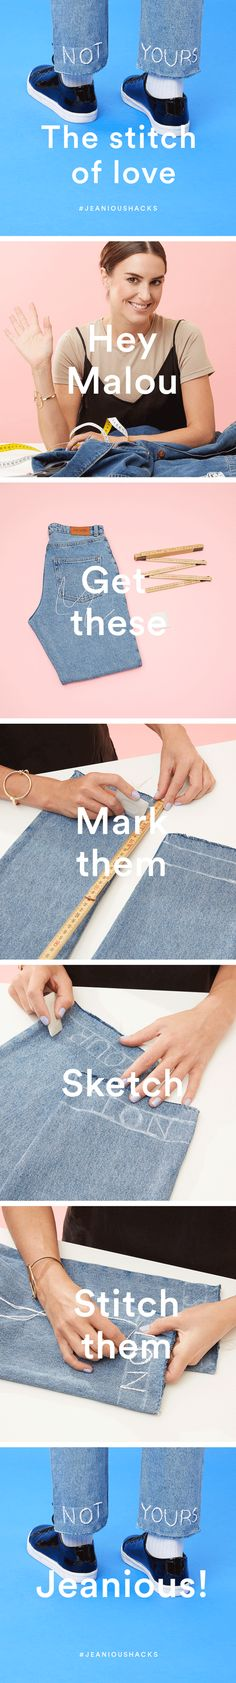 You will need: A ruler or tape measure  Chalk Embroidery cotton Jeans  Step 1: Mark them Choose where you'll embroider your jeans, then mark guide lines in chalk so it's straight and neat!  Step 2: Sketch With our guide lines in place we then carefully sketched out our statement.   Step 3: Stitch them Now you have your sketch, start stitching! Malou used a 'split stitch', but any stitch you want will do.  Step 3: Wear them! You so deserve a Hi-5! Now go wear those babes with pride! Jeanious!